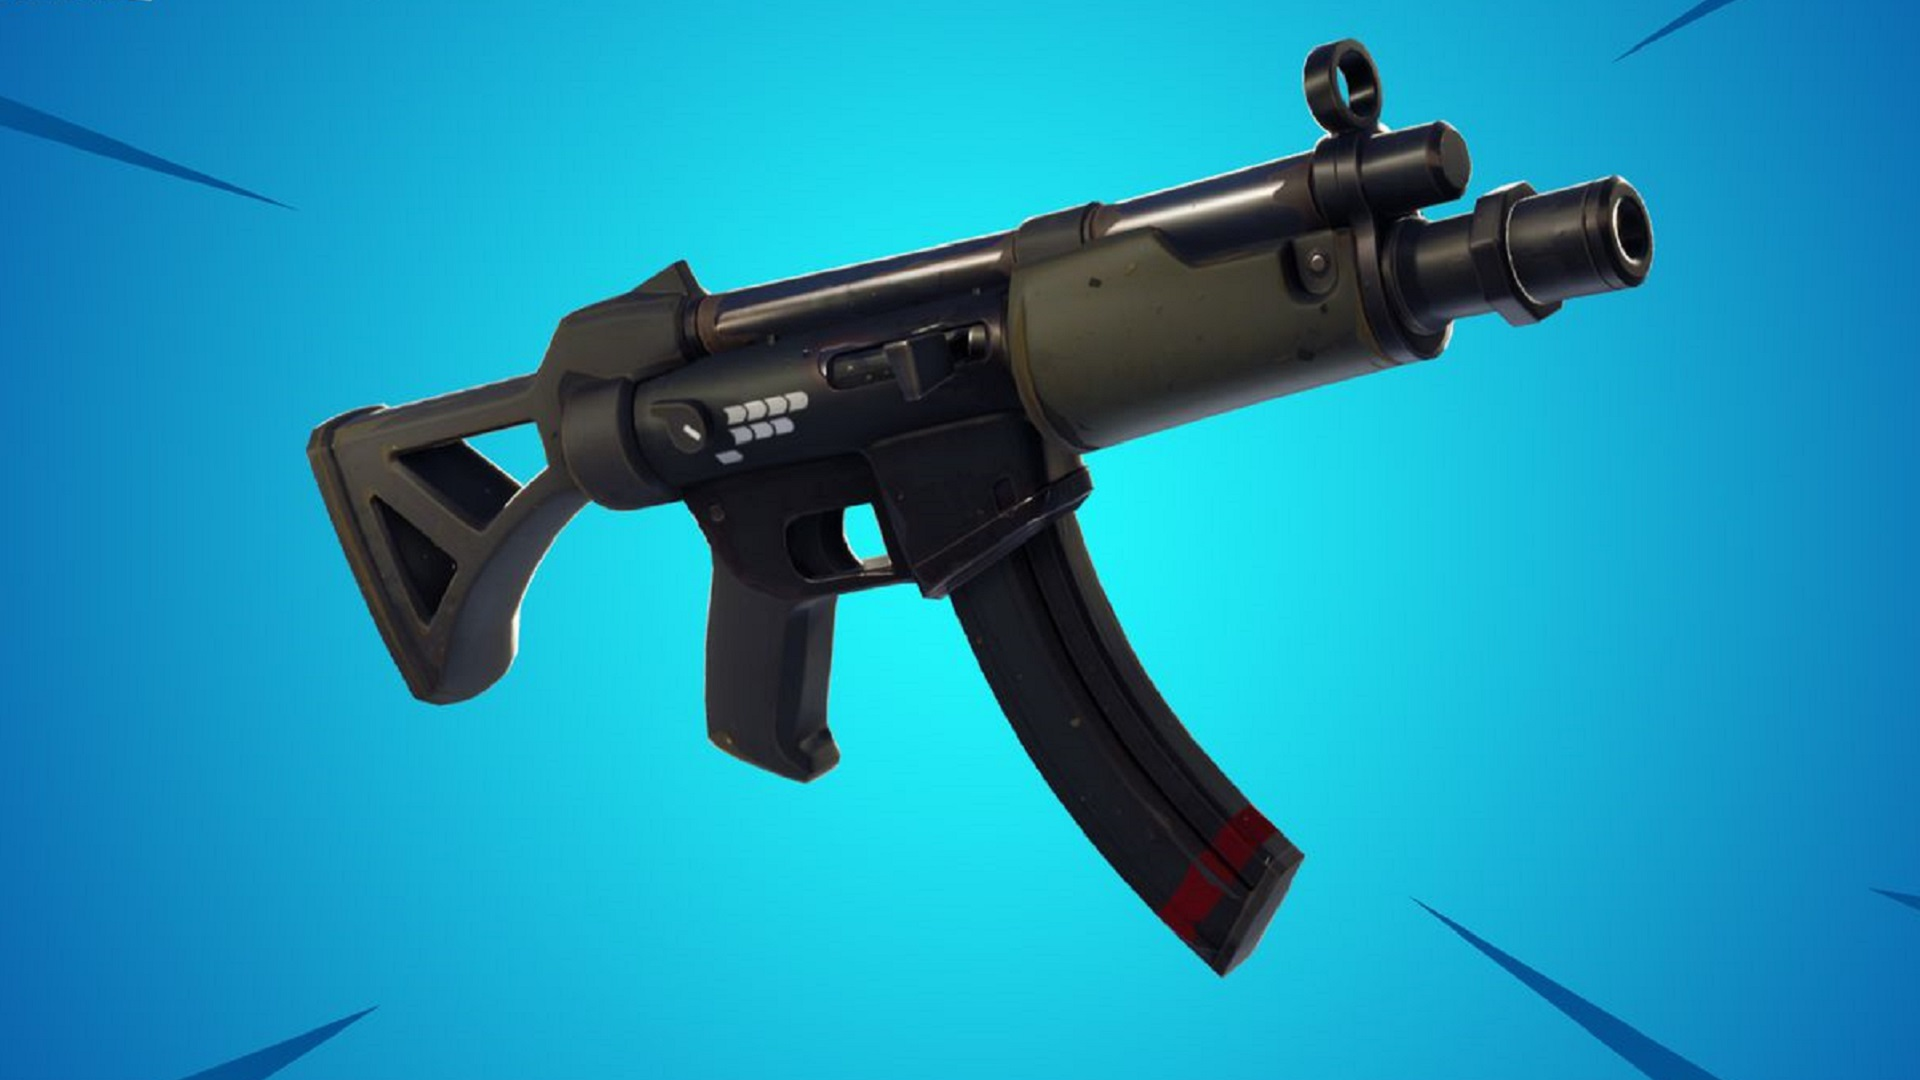 New Guns In Fortnite Season 2 Fortnite Chapter 2 Season 7 Tier List The Best Weapons And How To Craft Them The Loadout